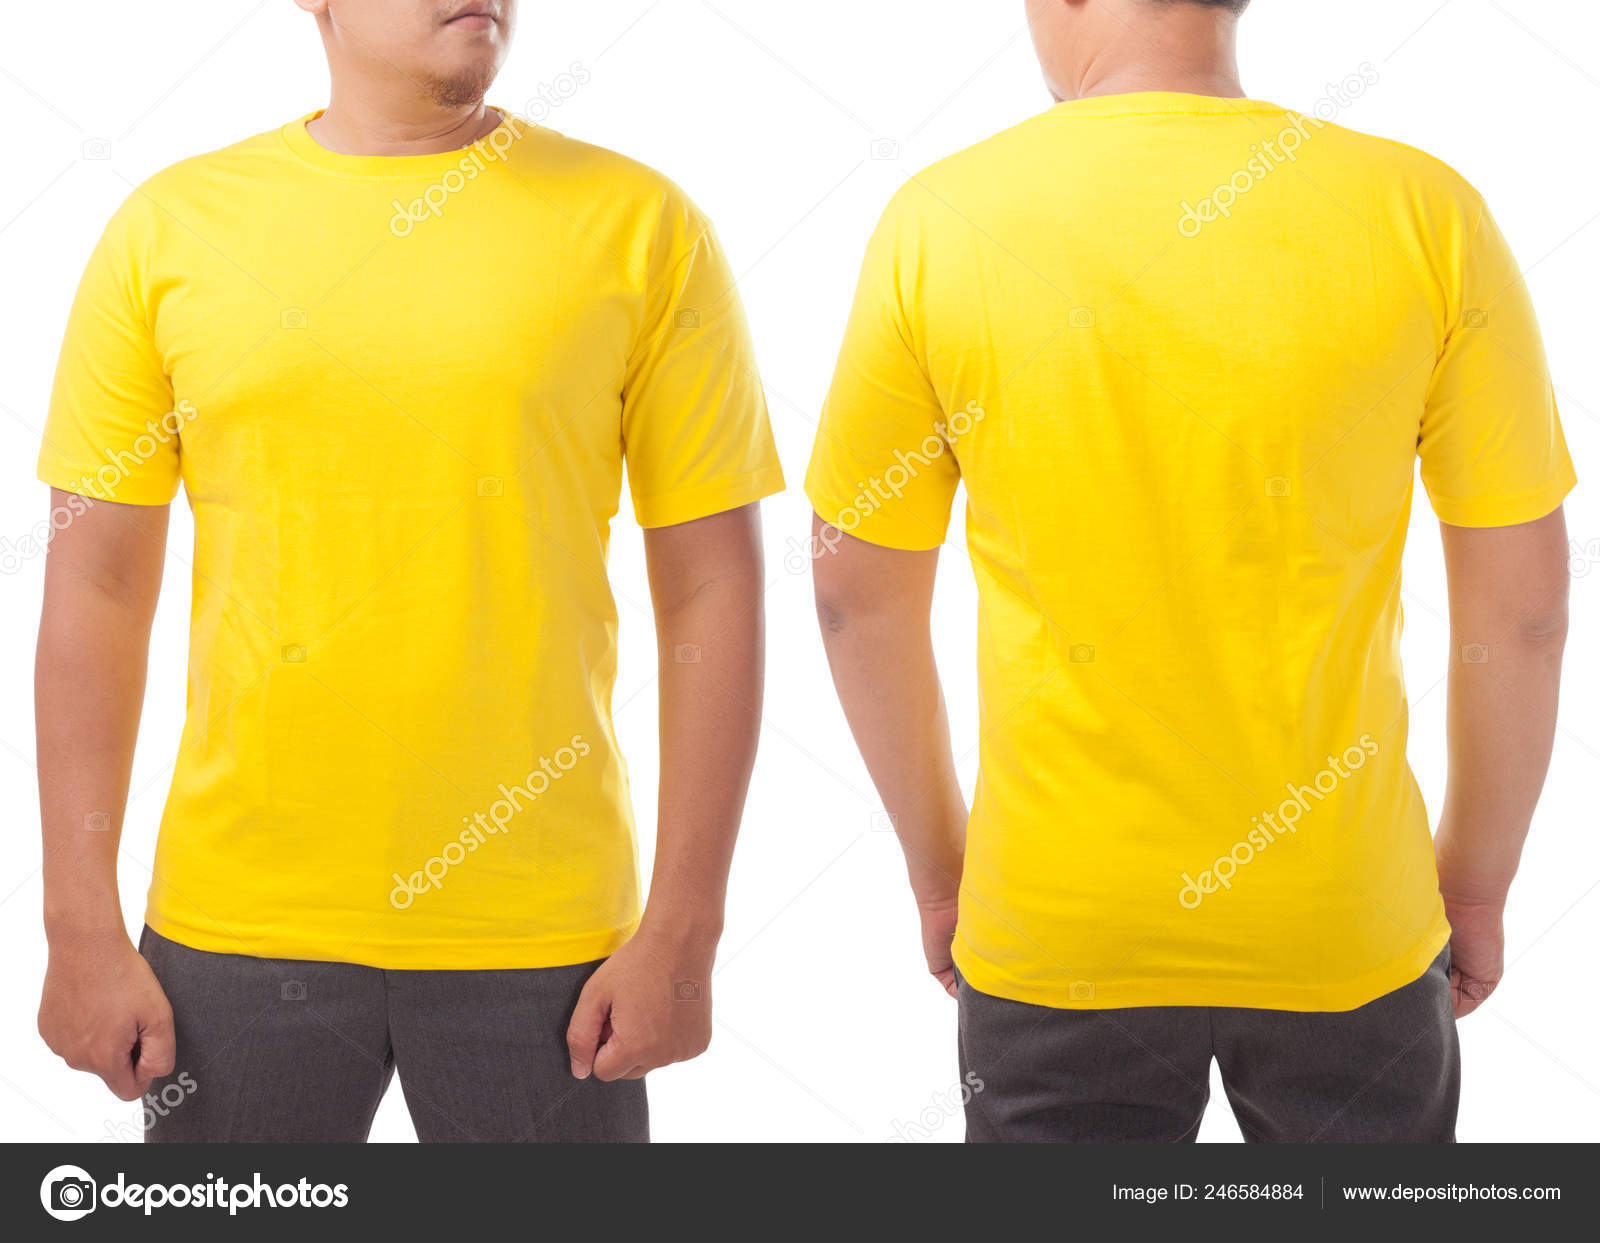 Download Yellow Shirt Mock Front Back View Isolated White Male Model Stock Photo C Airdone 246584884 PSD Mockup Templates